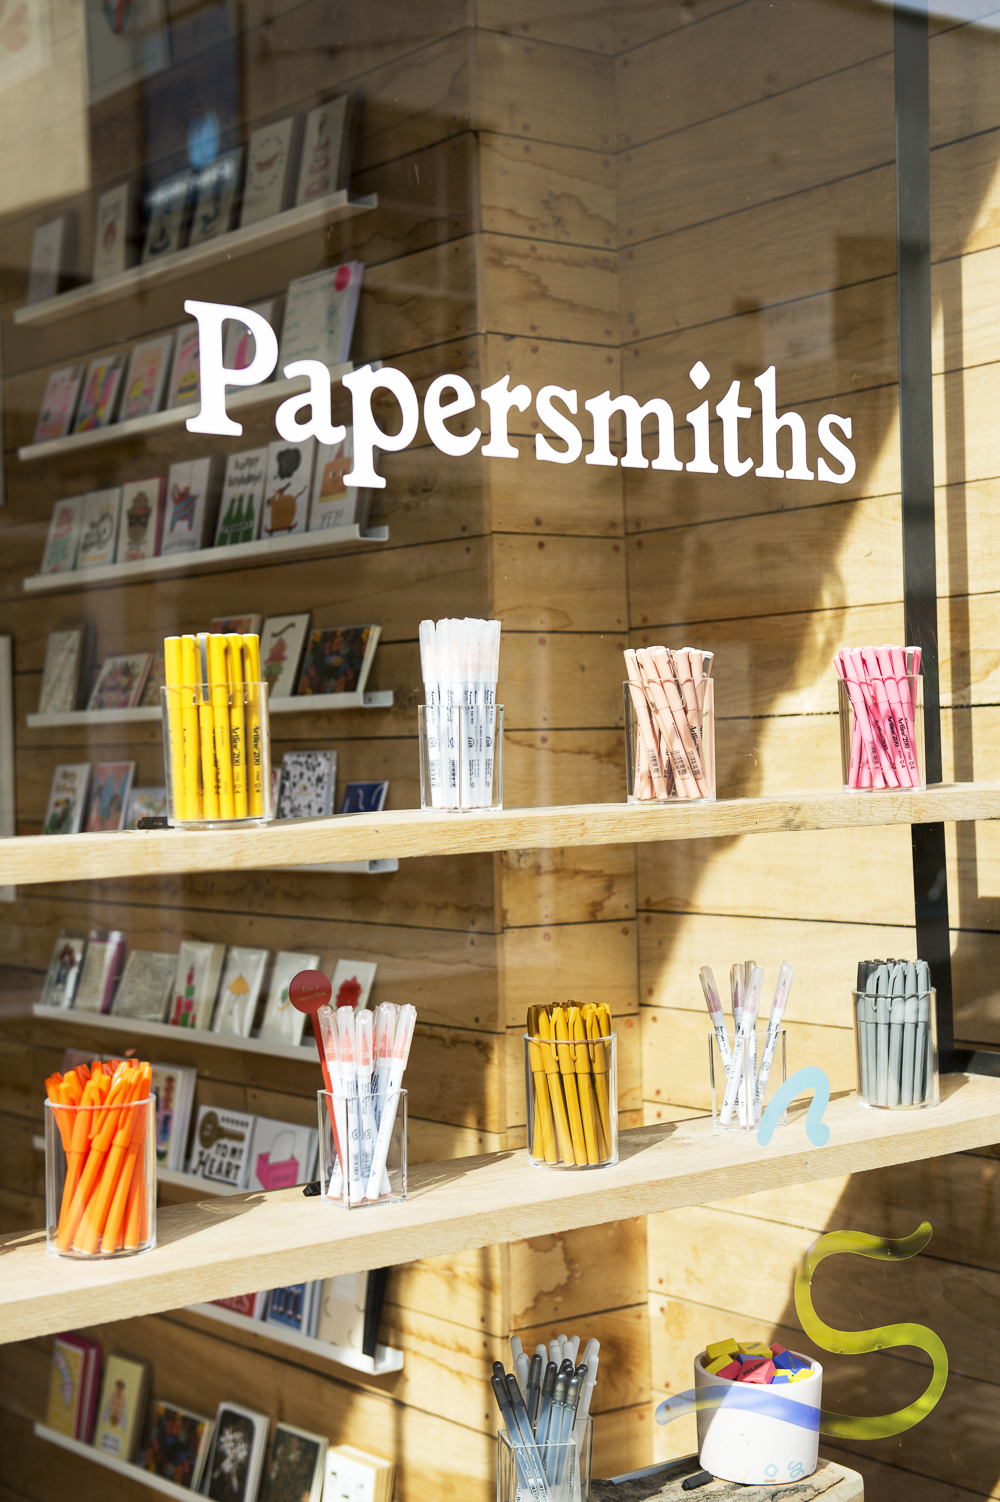 Papersmiths, Bristol